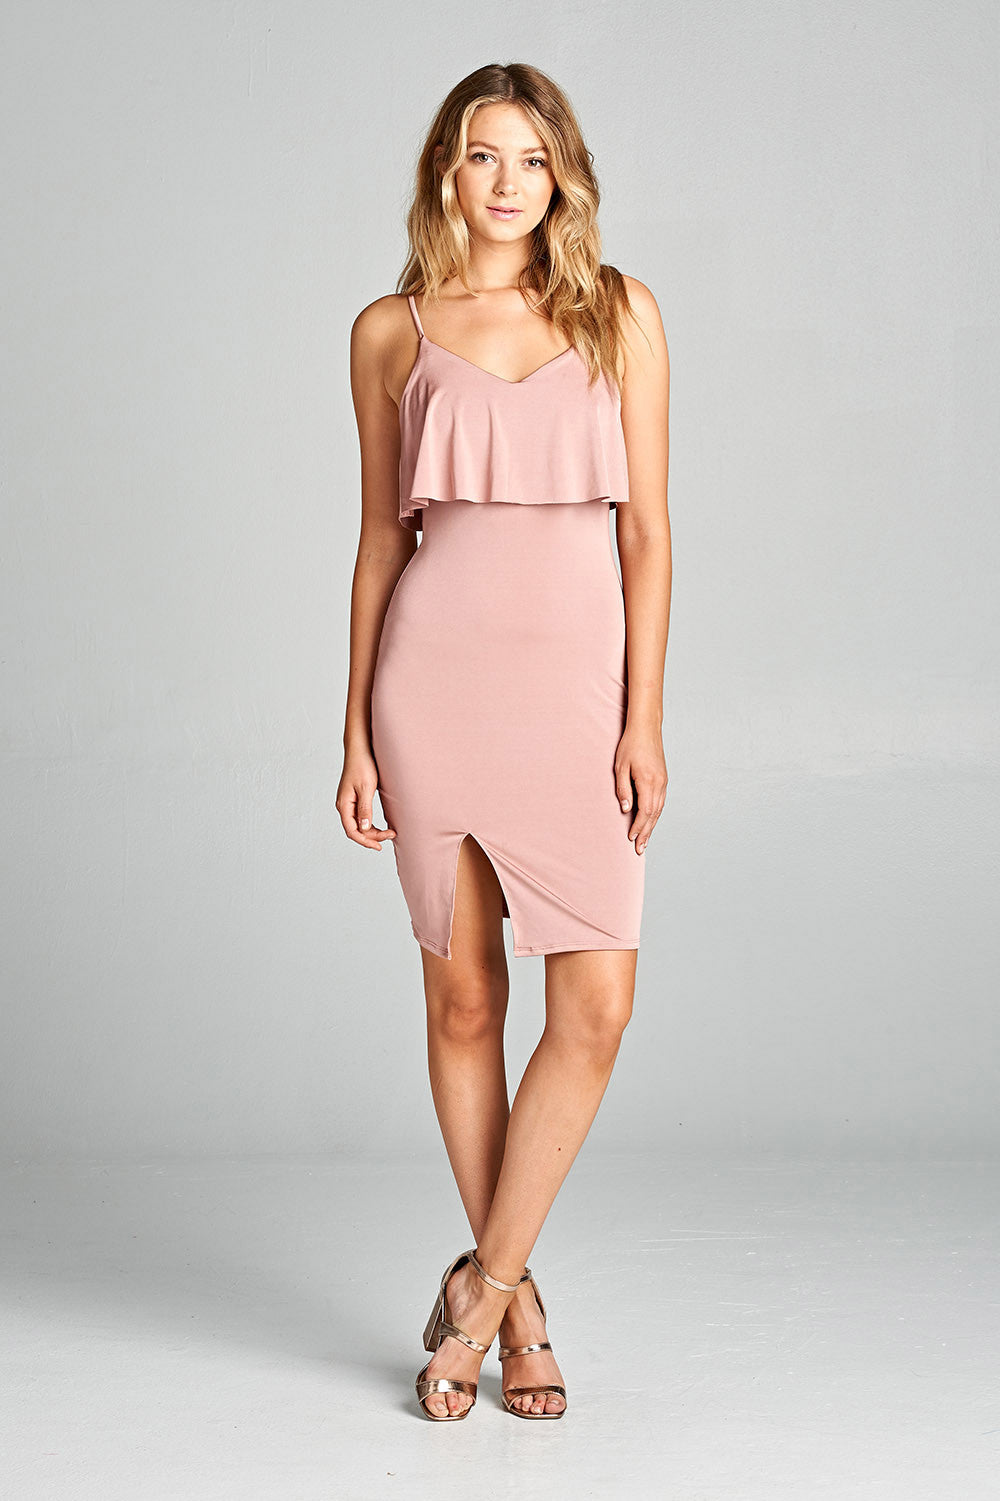 Sleeveless Ruffle Front Slit Bodycon Dress - Comes In 2 Colors